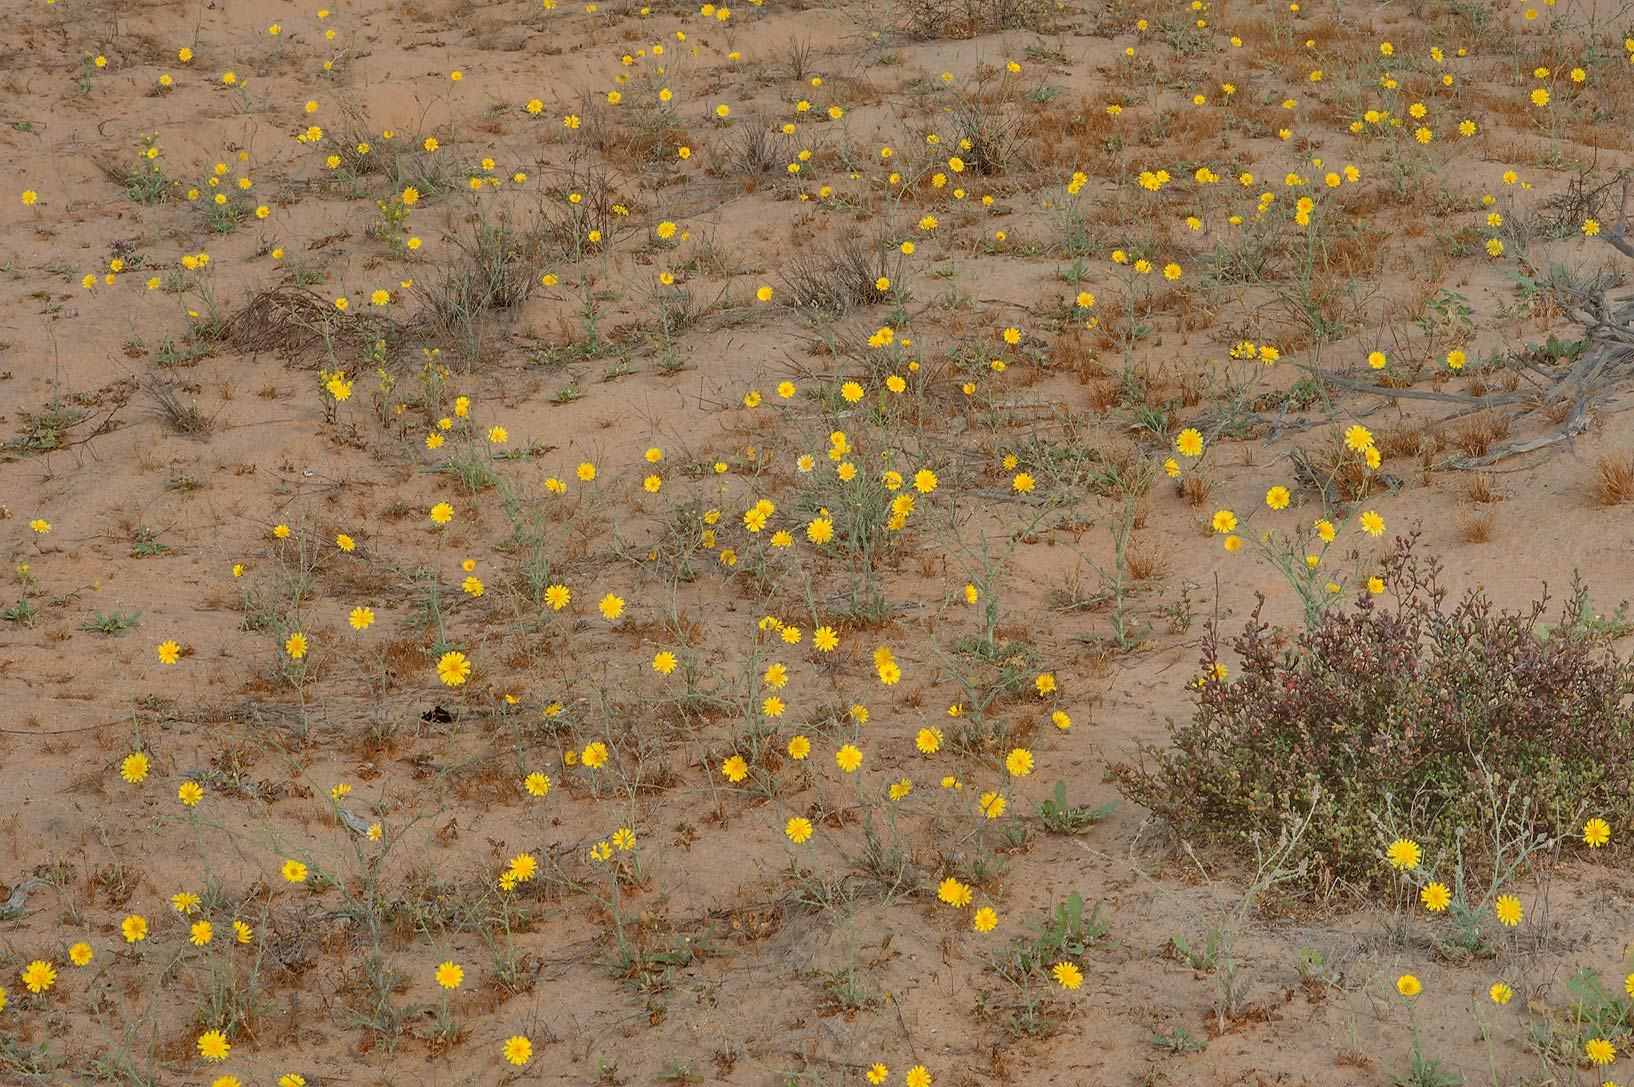 Masses of yellow flowers of Launaea mucronata...Reserve near Abu Samra. Southern Qatar